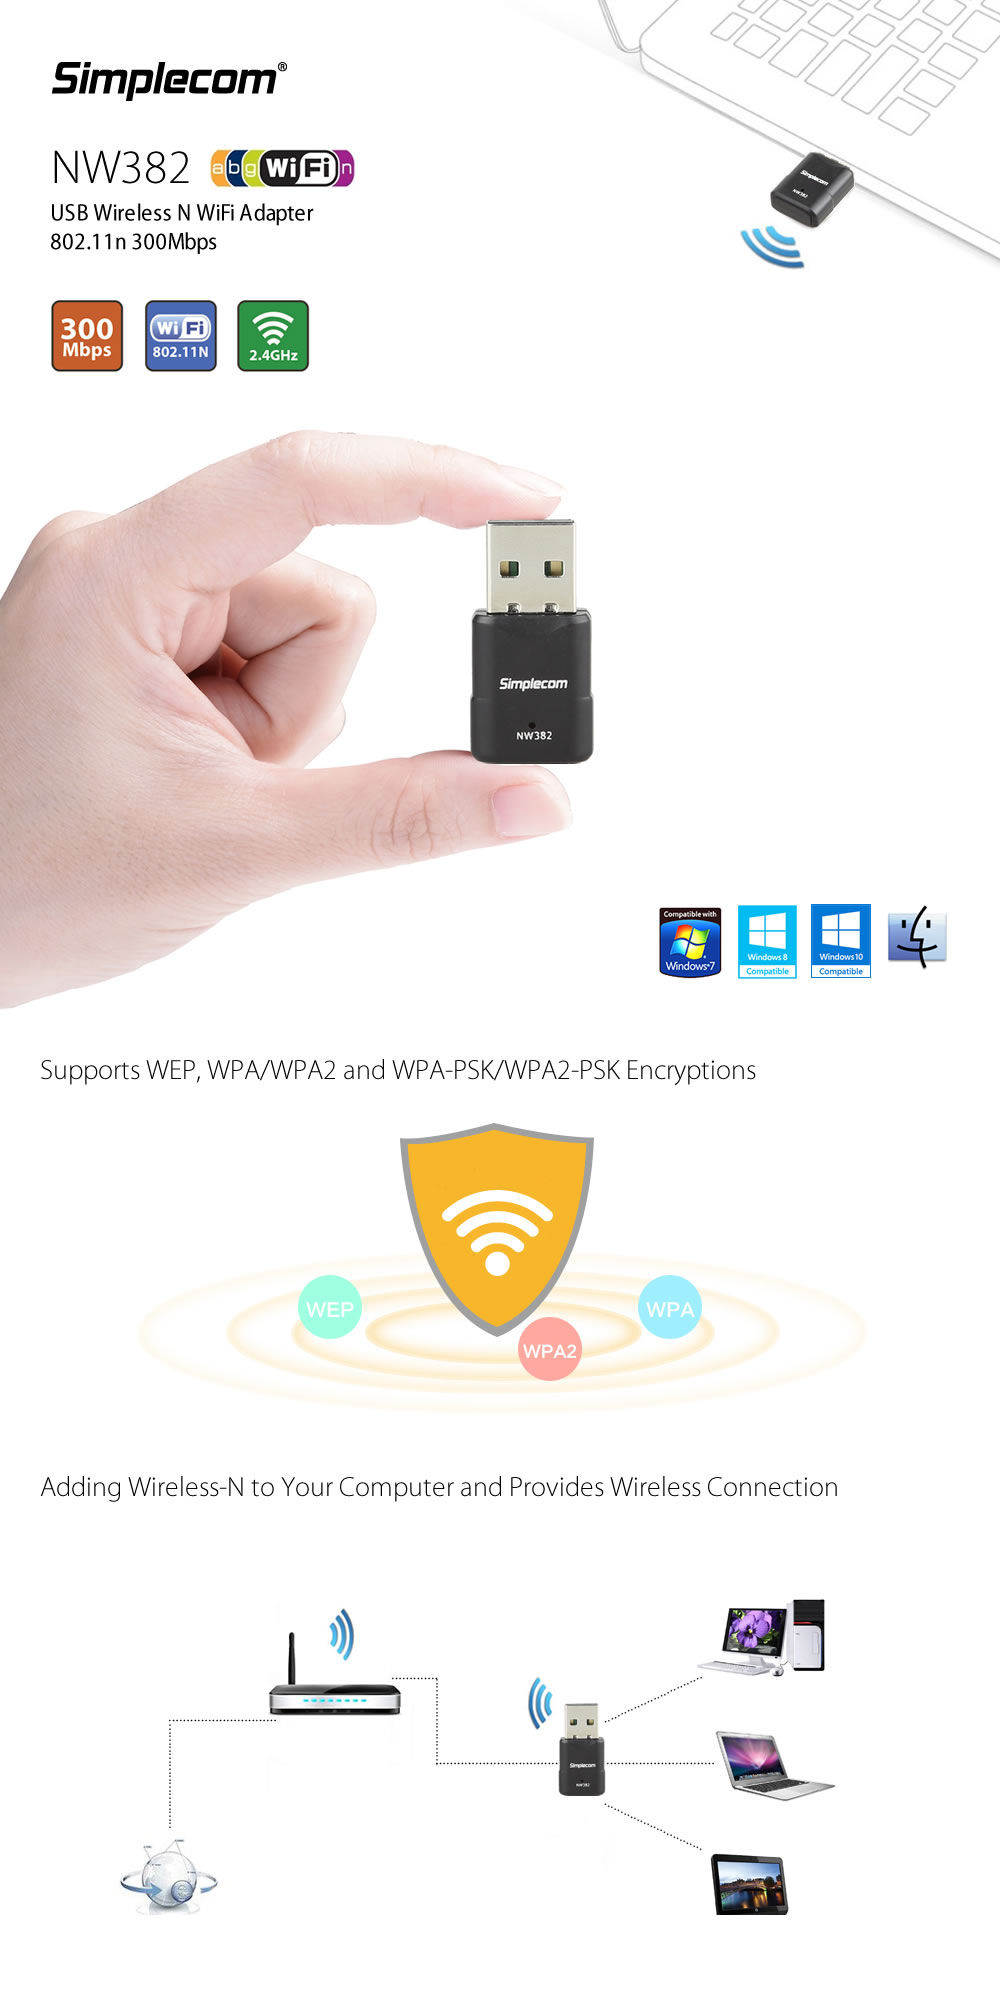 Simplecom Nw382 Mini Wireless N Usb Wifi Adapter 80211n 300mbps Dongle Receiver Is A That Connect Laptop Or Desktop Computer To Network Its Compatible With 80211b G